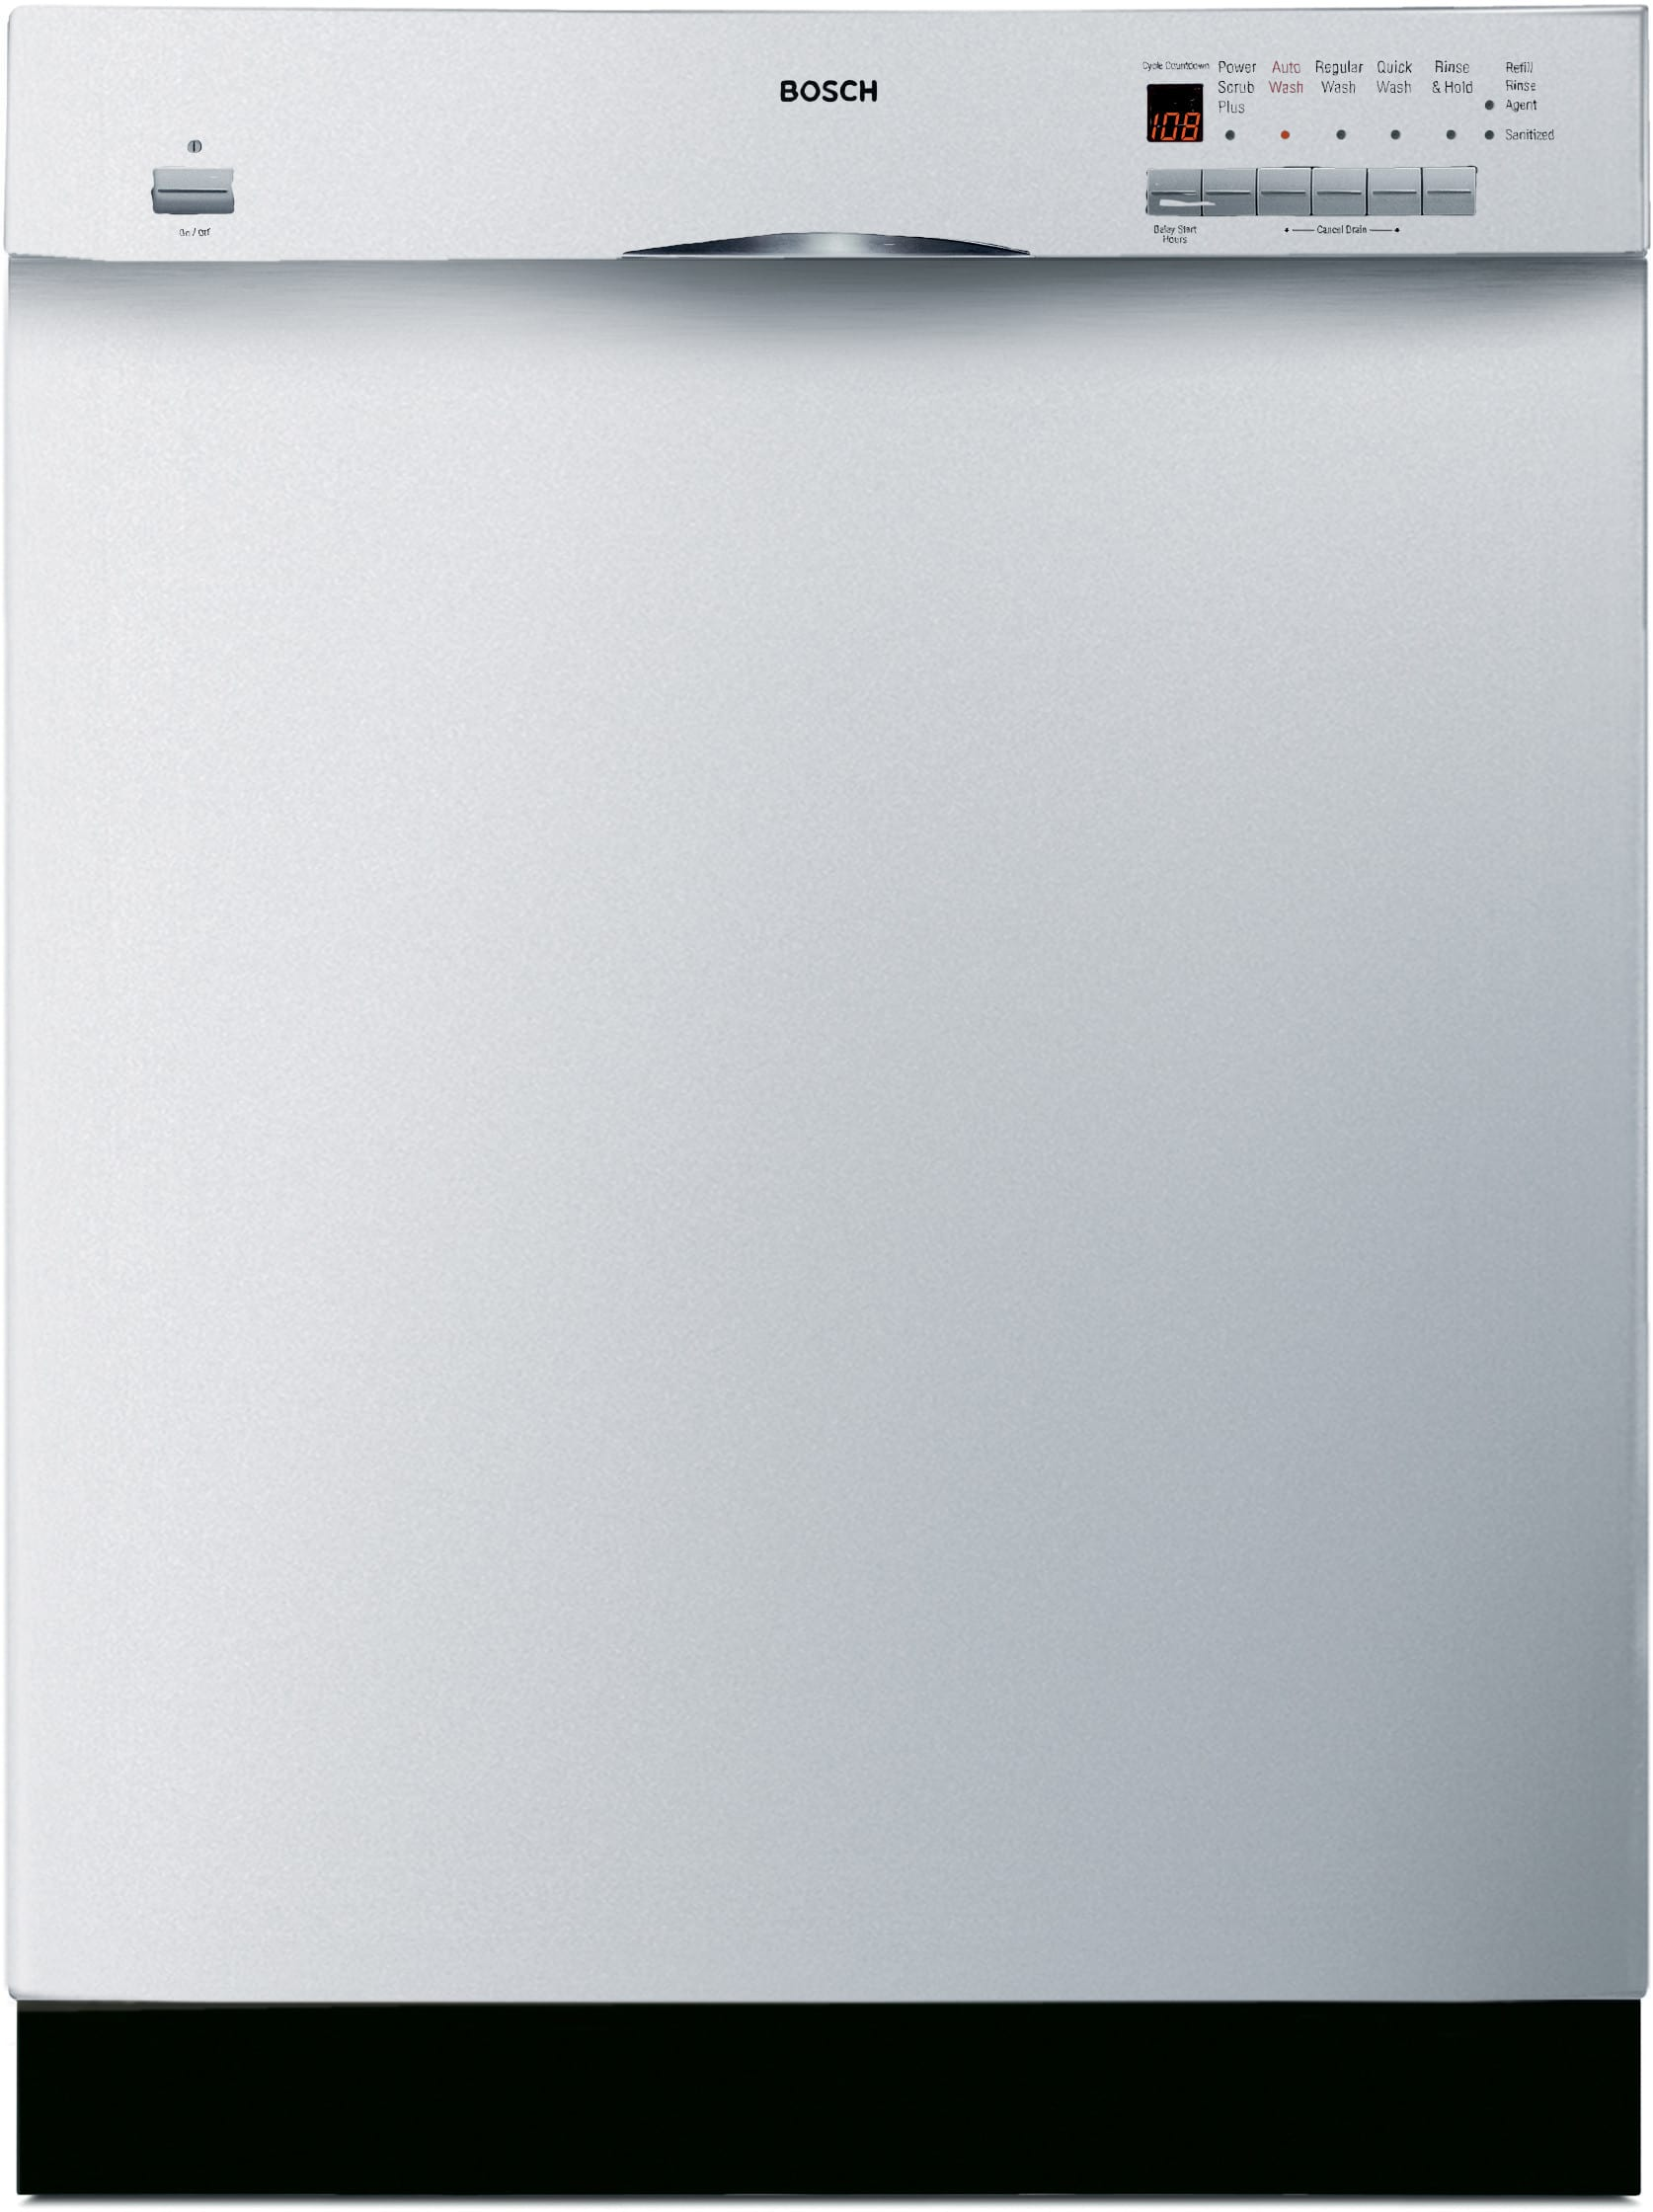 Bosch SHE56C02UC Full Console Dishwasher with 5 Wash Cycles, Platinum Mid  Racks, 19 Hours Delay Start & Silence Rating of 52 dB: White